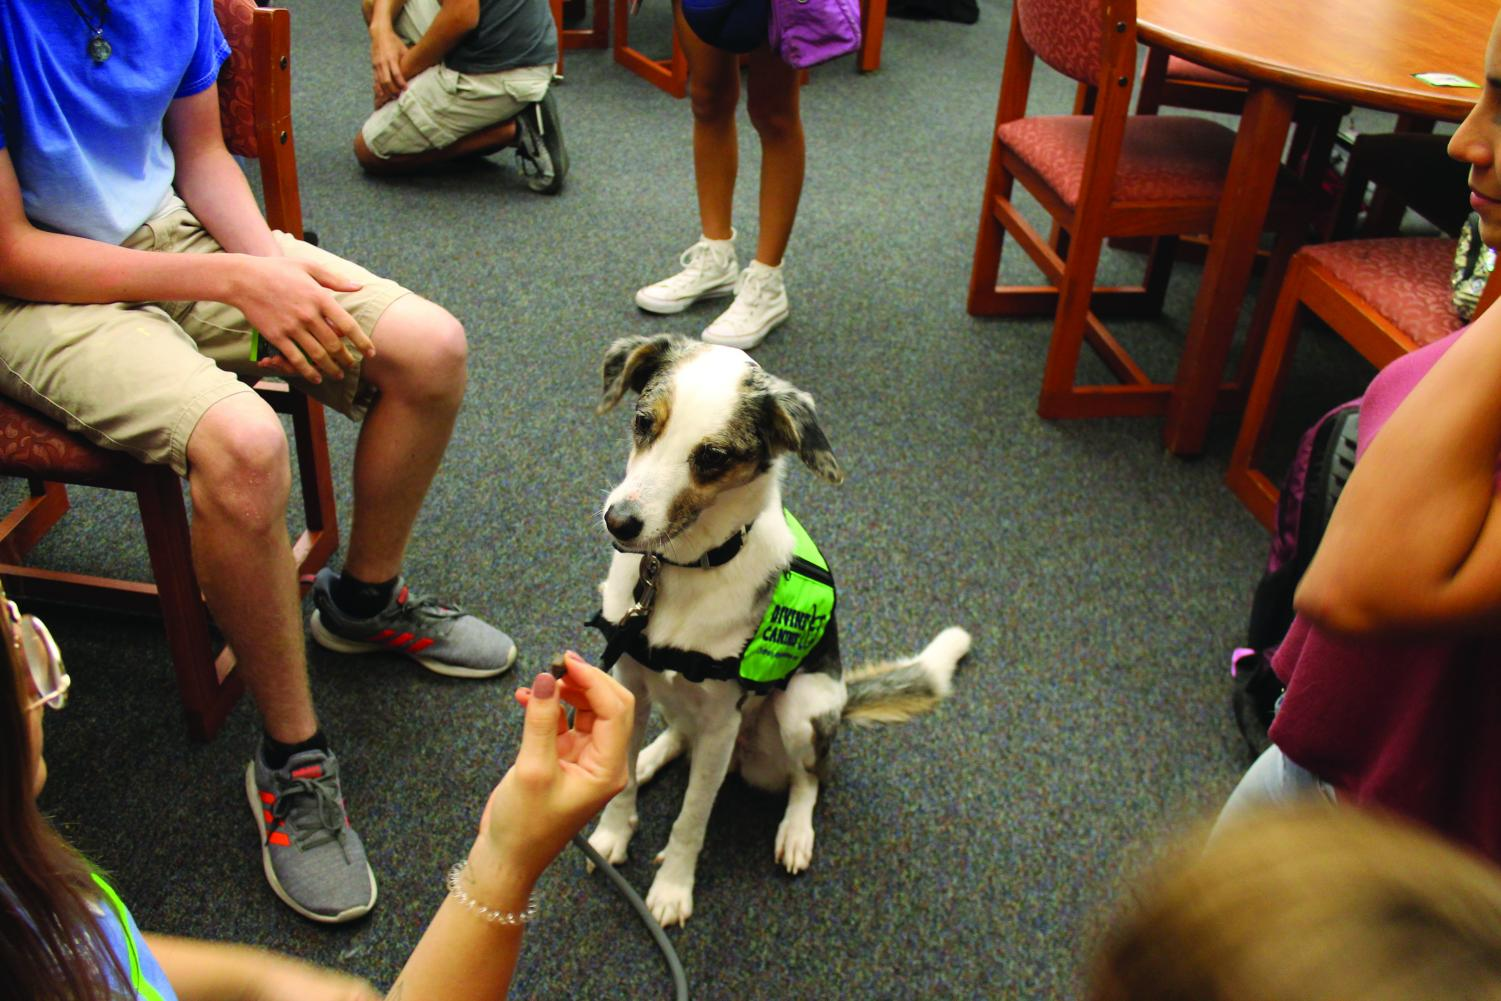 Therapy dog Harper and her handler Courtney Leonard demonstrate some of Harper's tricks to onlookers. Harper and Leonard visited LASA for the first time during Divine Canine's Oct. 9 study break, providing students with a chance to destress. photo by Emma McBride